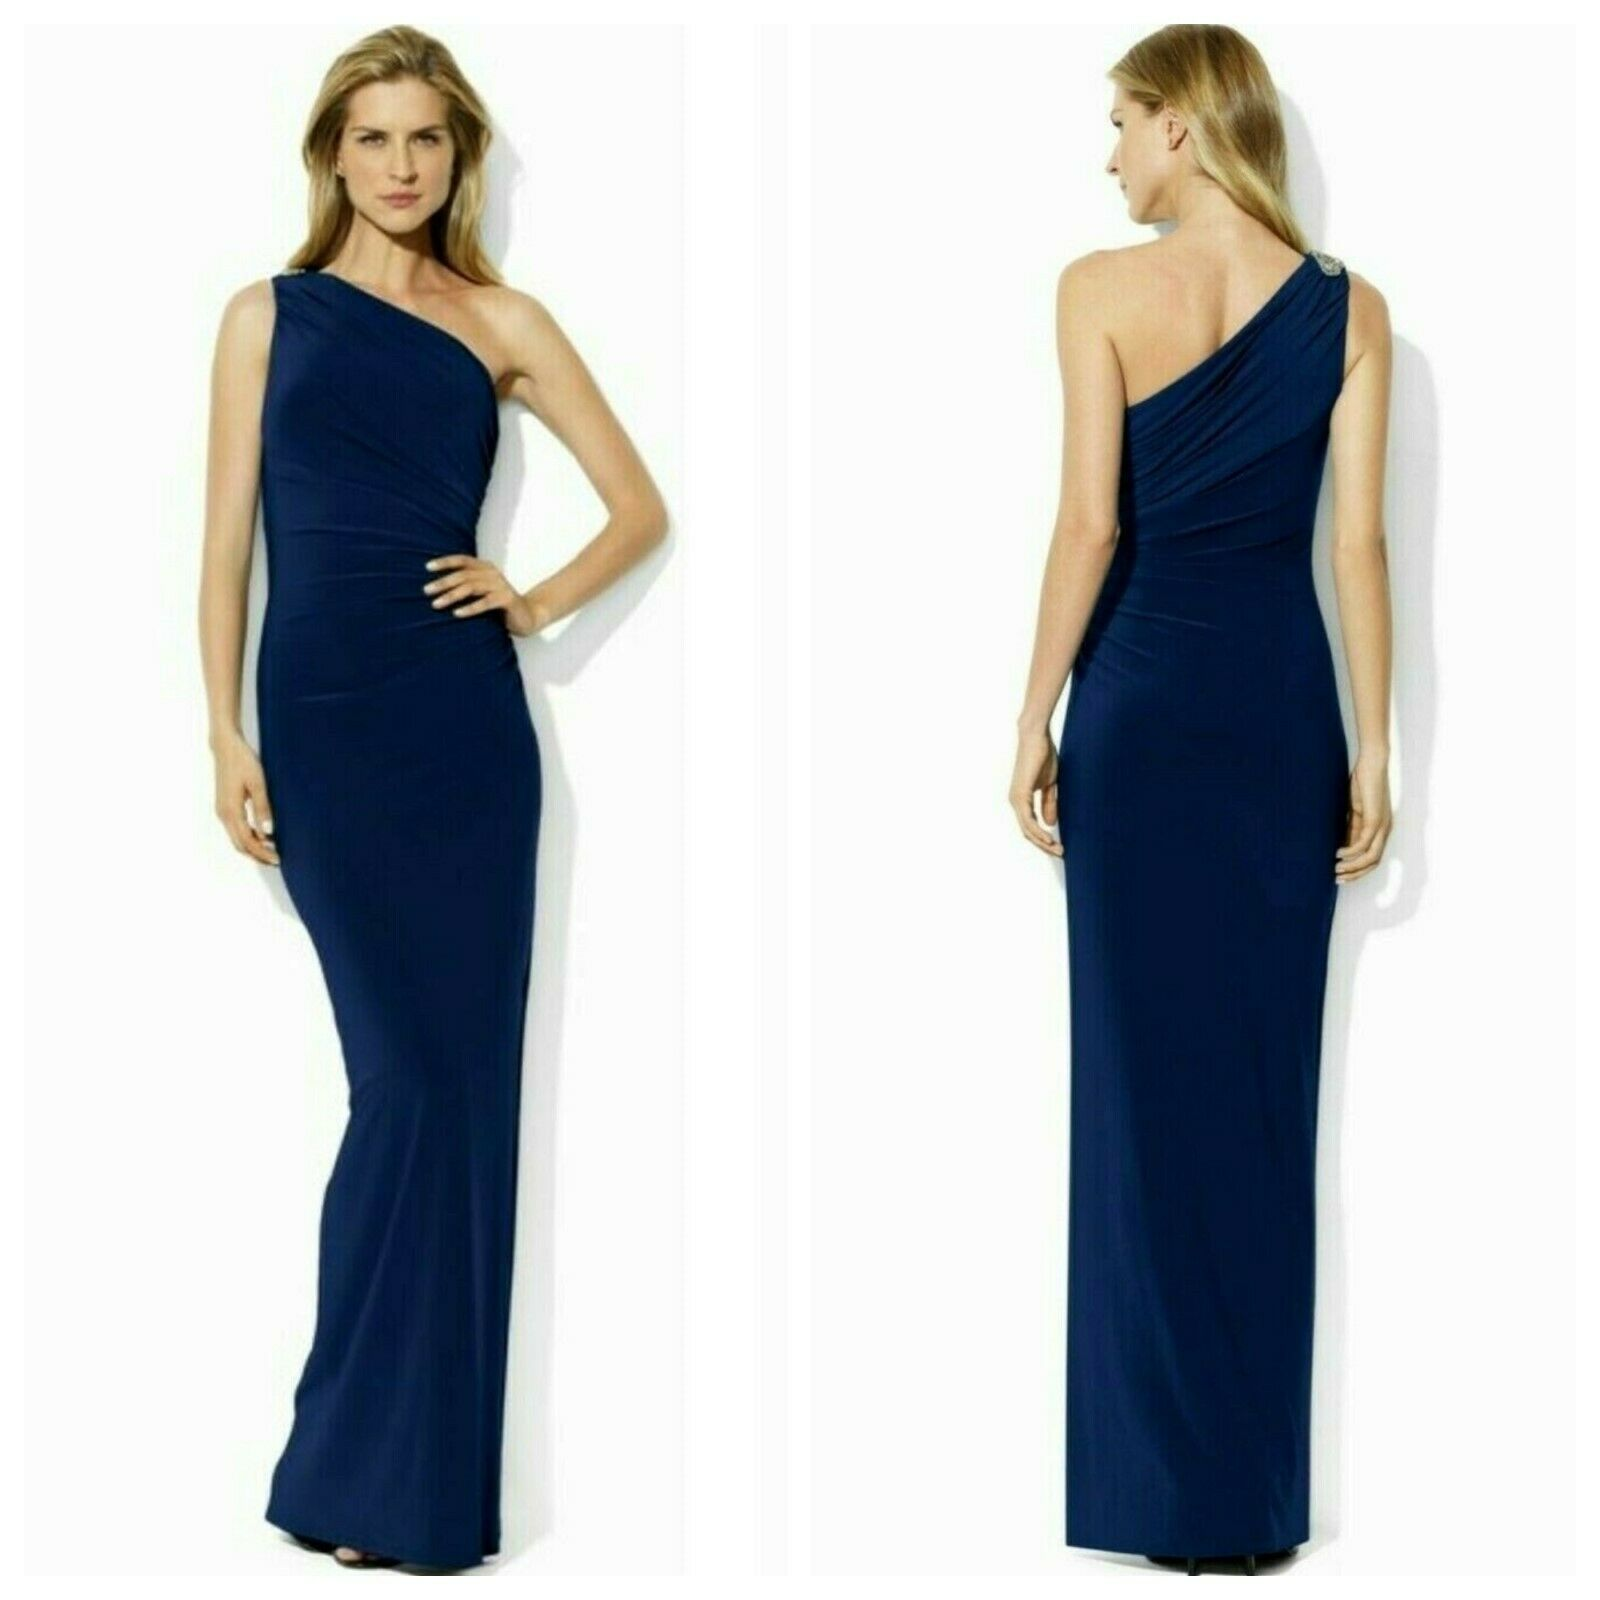 LAUREN  RALPH SEXY  EMBELLISHED EMBELLISHED EMBELLISHED ONE SHOULDER  EVENING GOWN DRESS Sz  8 NWT   260 d8d085